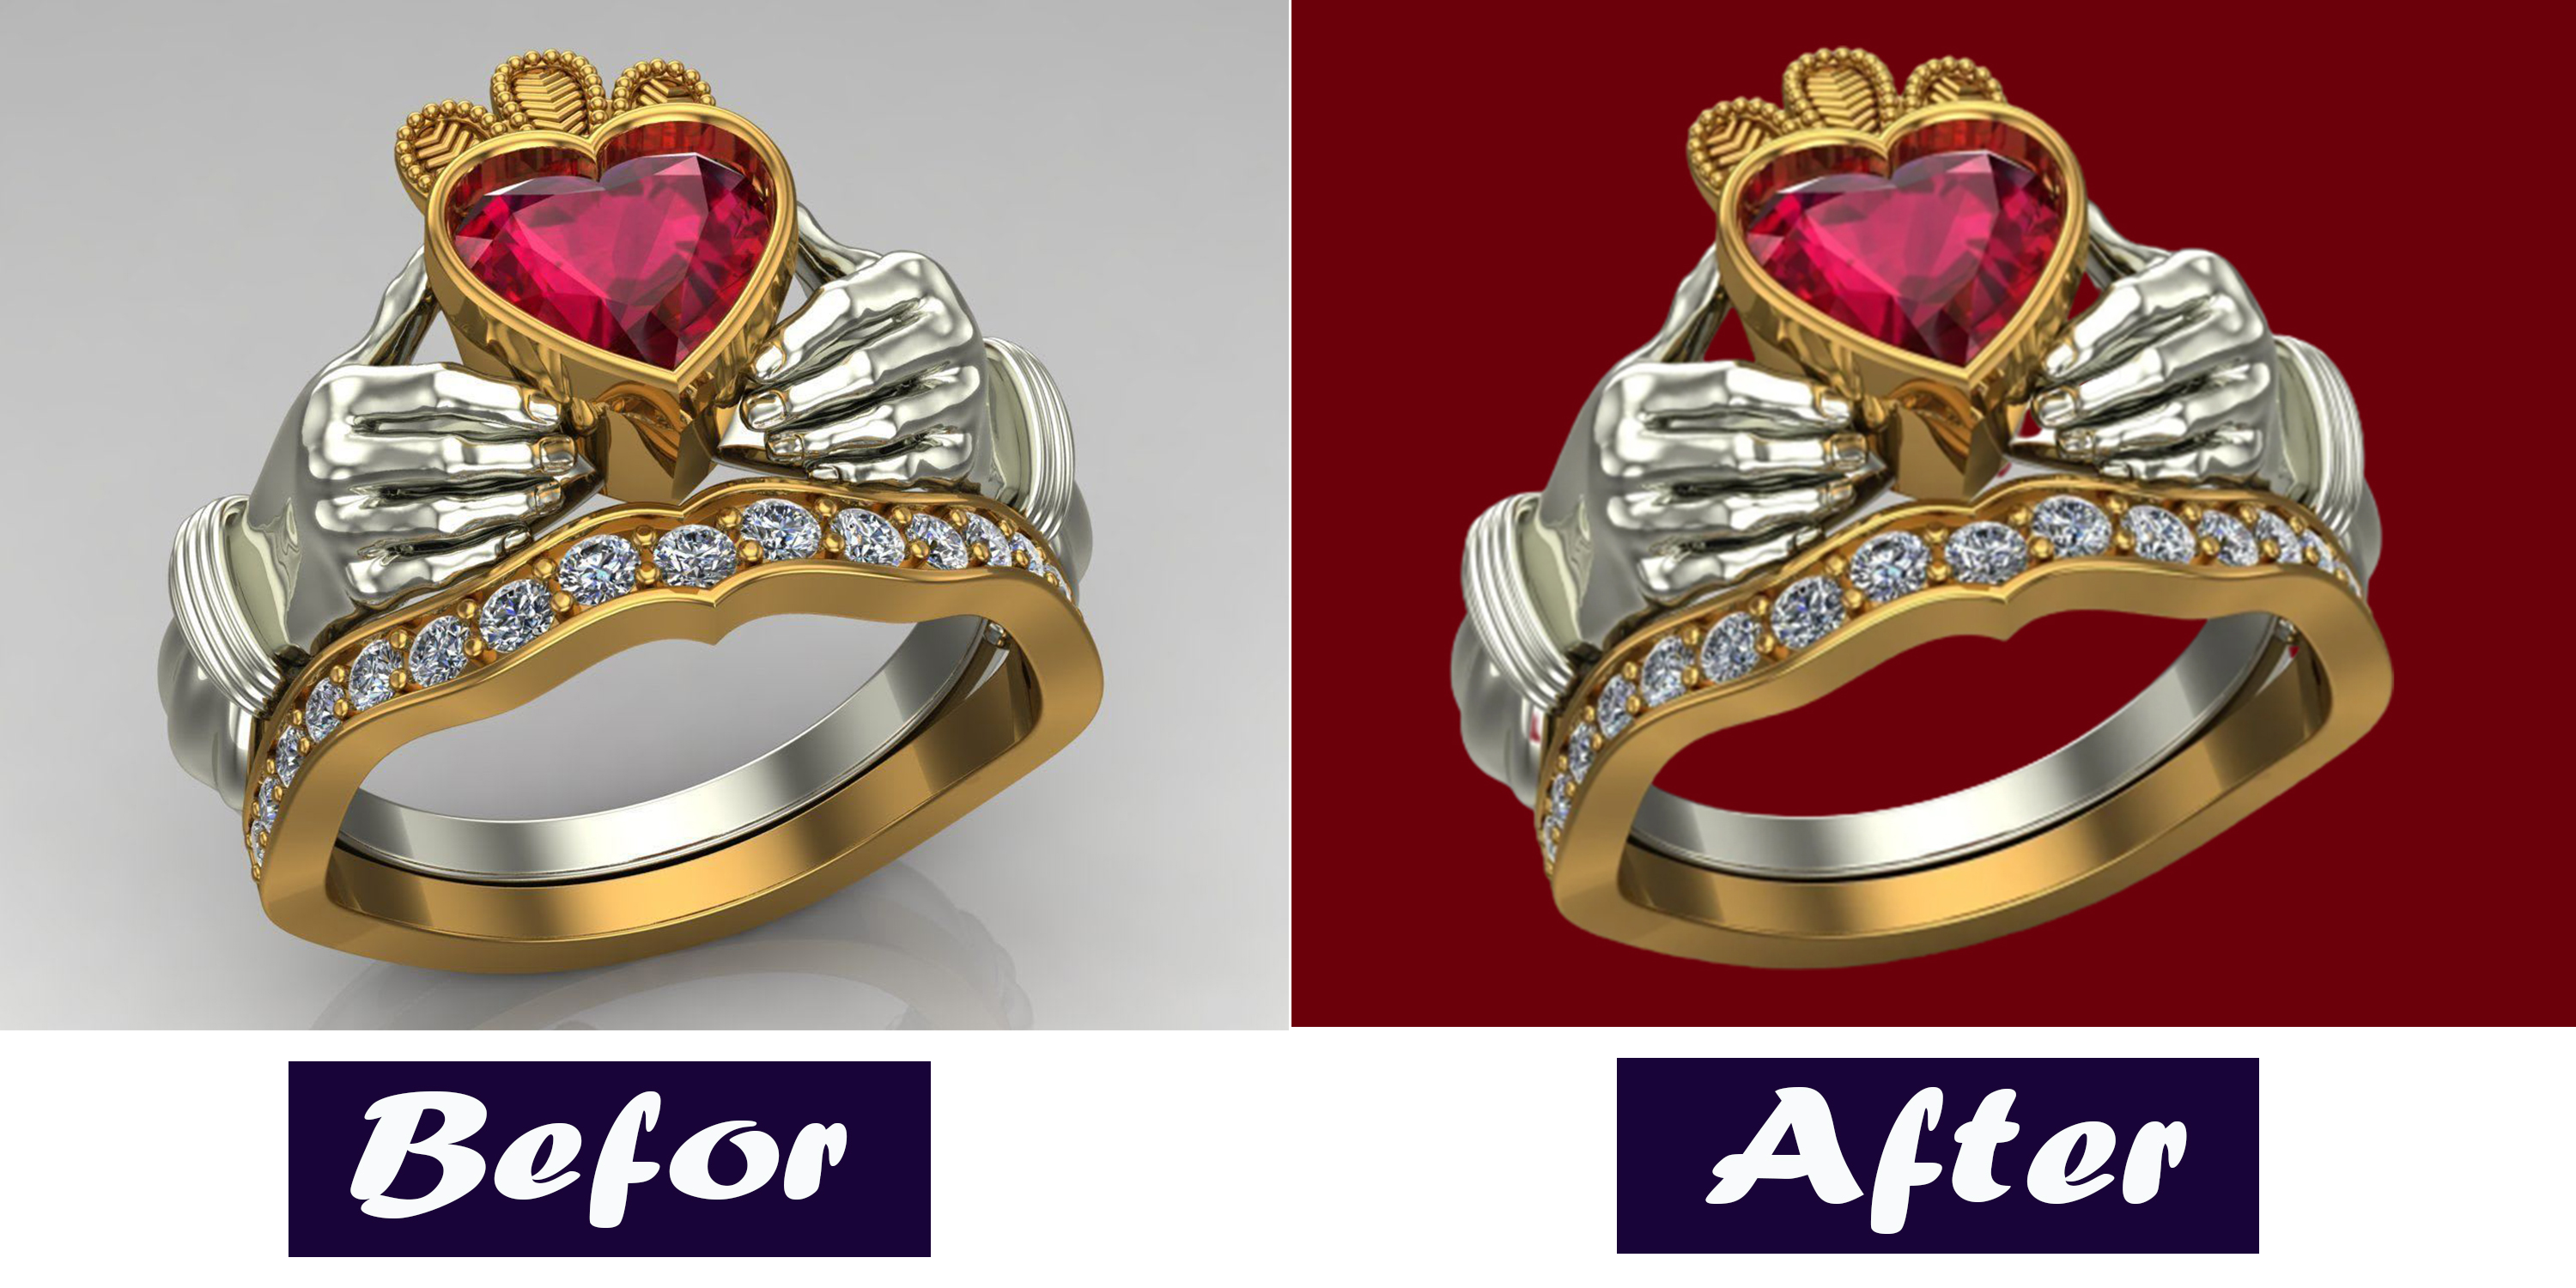 I will do hard jewelry image's background remove and color background creates.